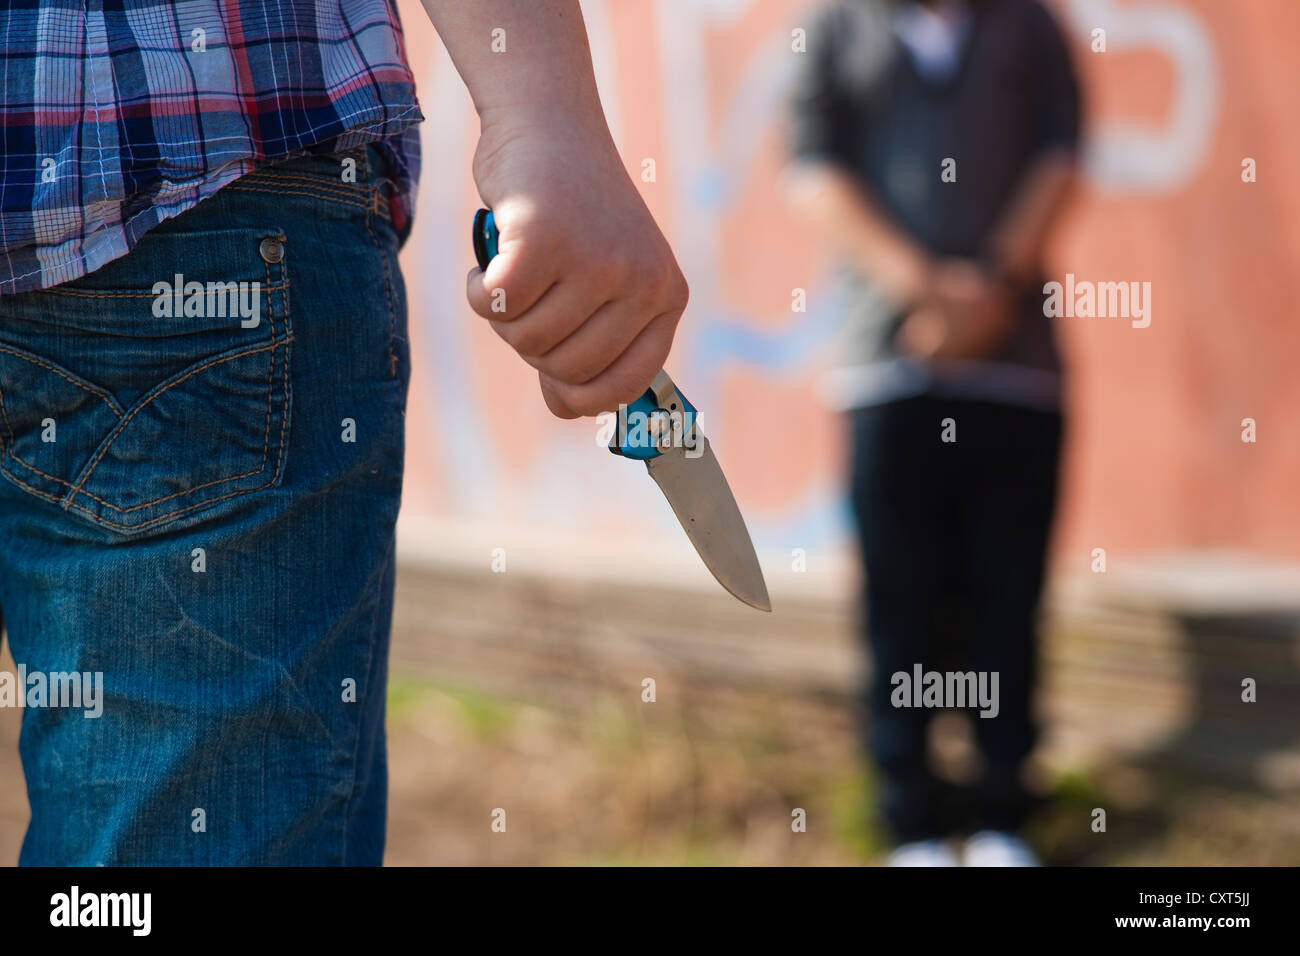 Boy is threatened by a youth with a knife - Stock Image